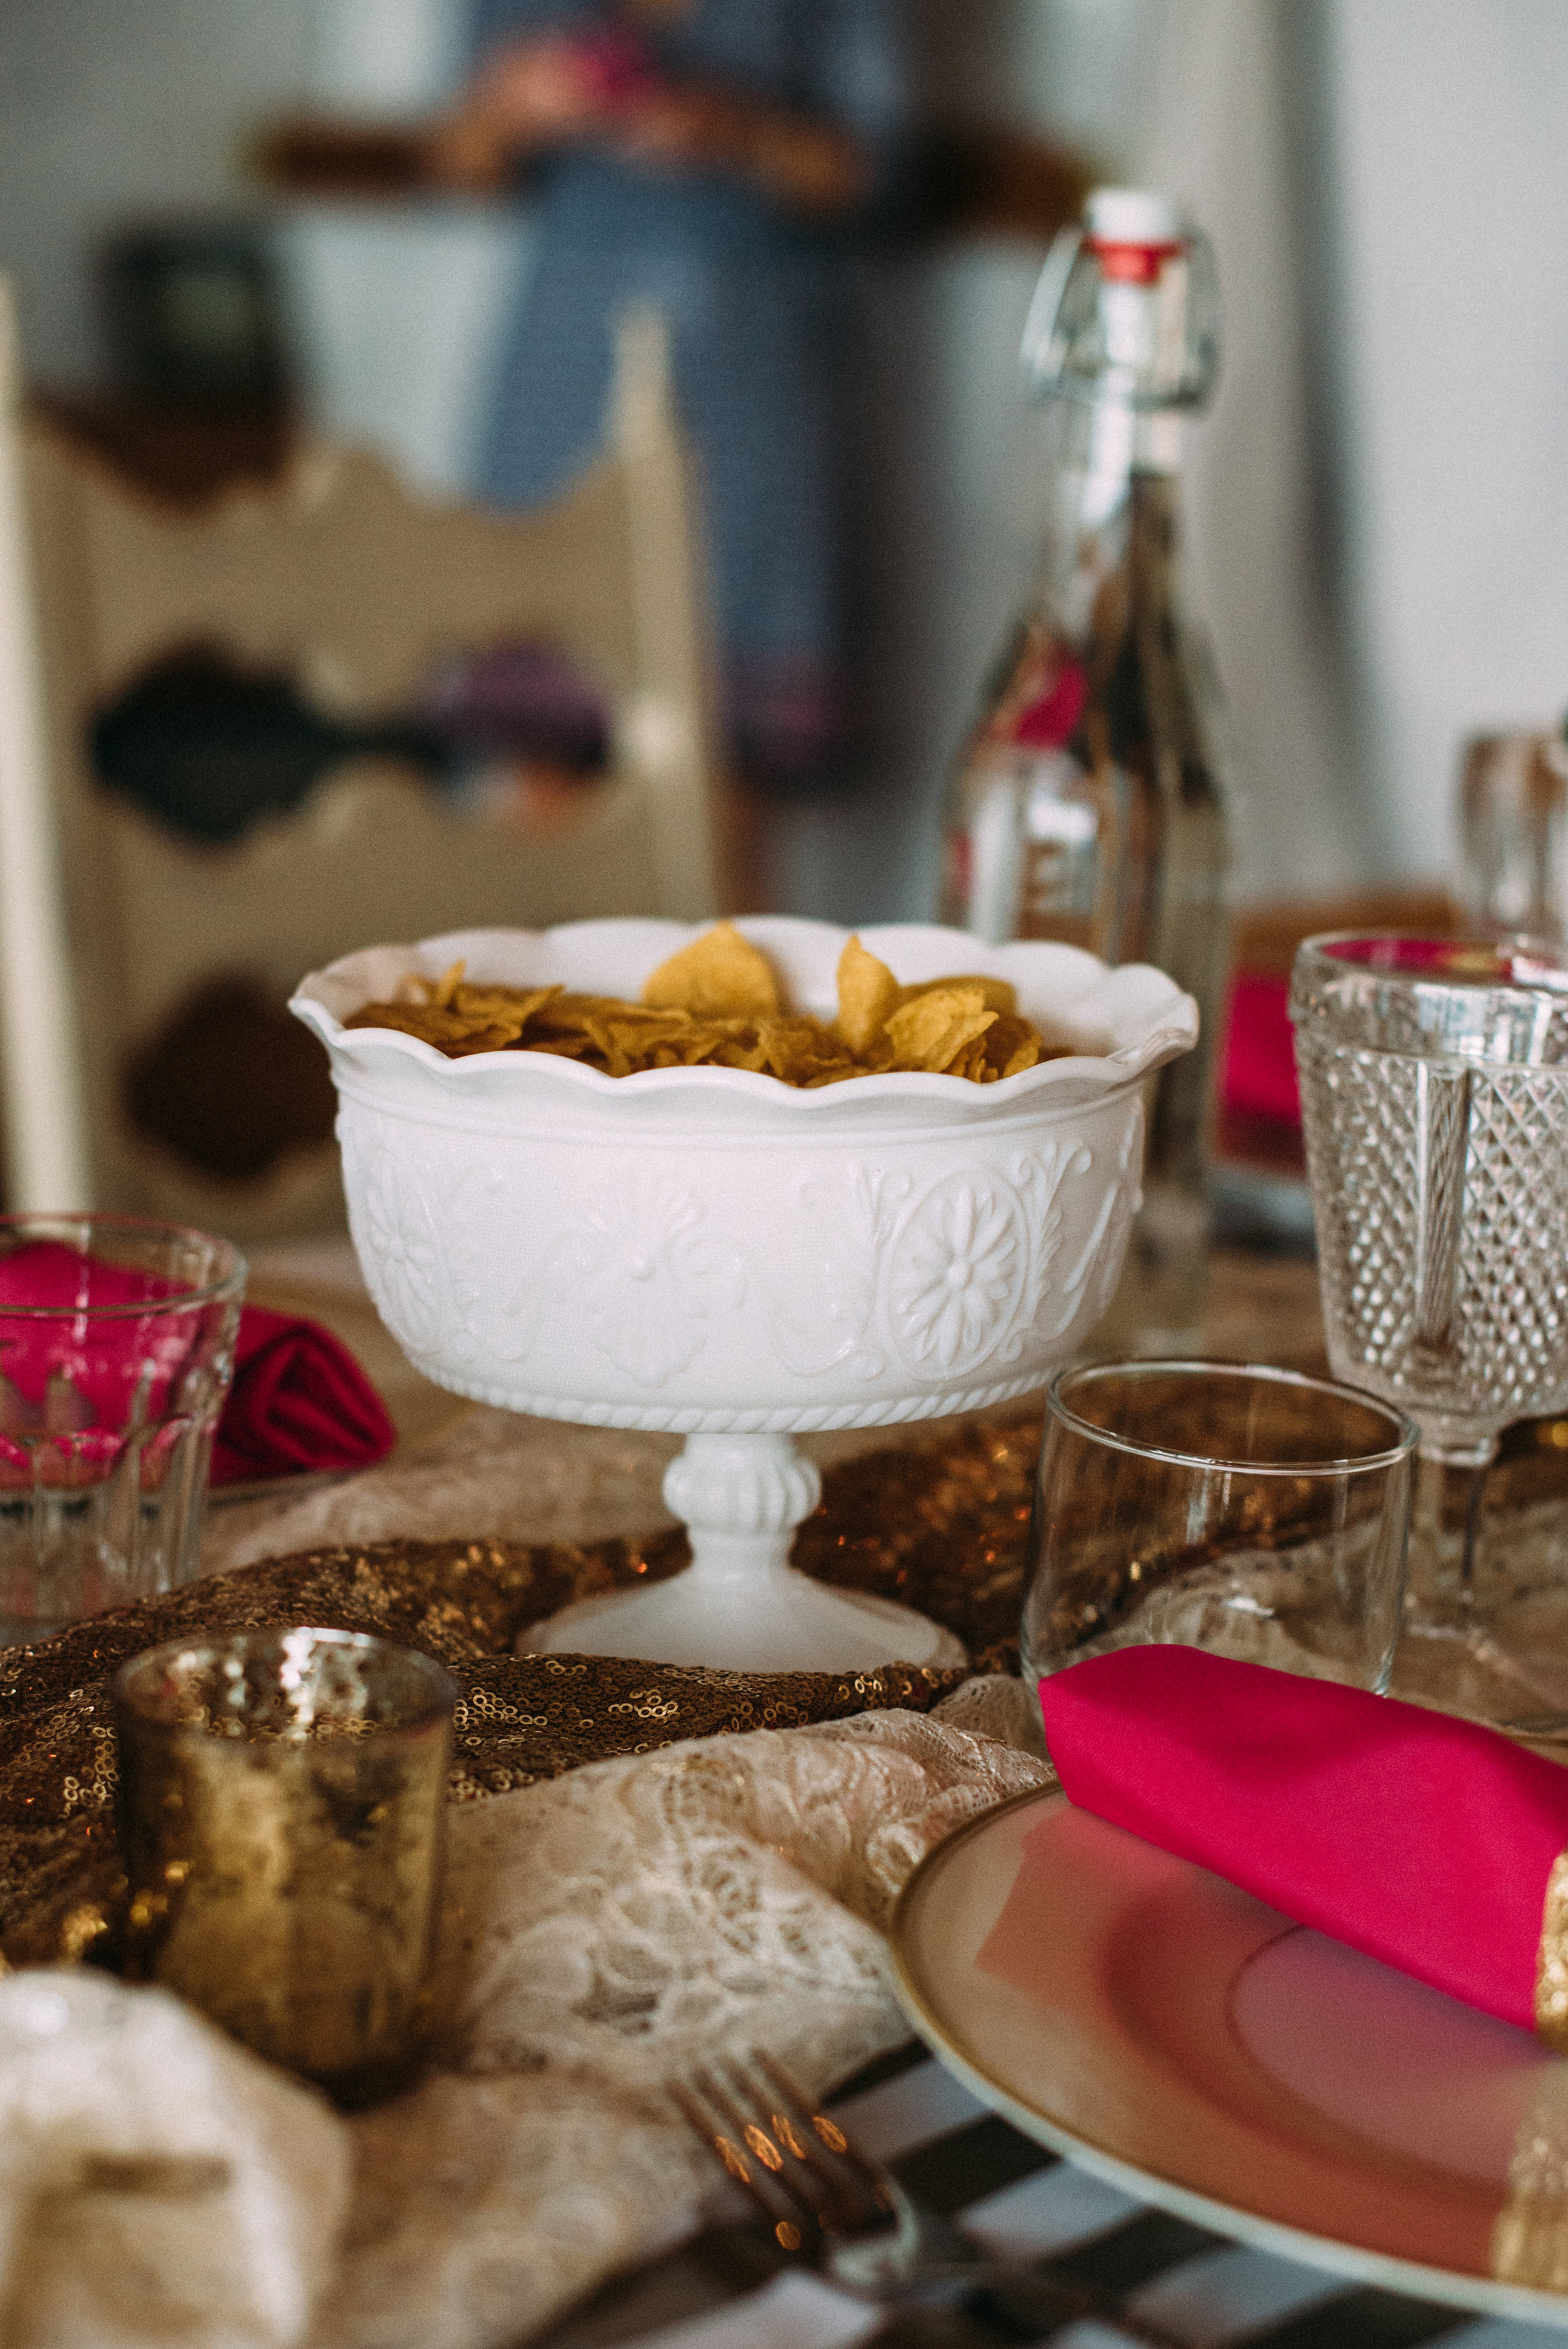 Tortilla chips in a footed milk glass bowl taste better - it's a fact ;)